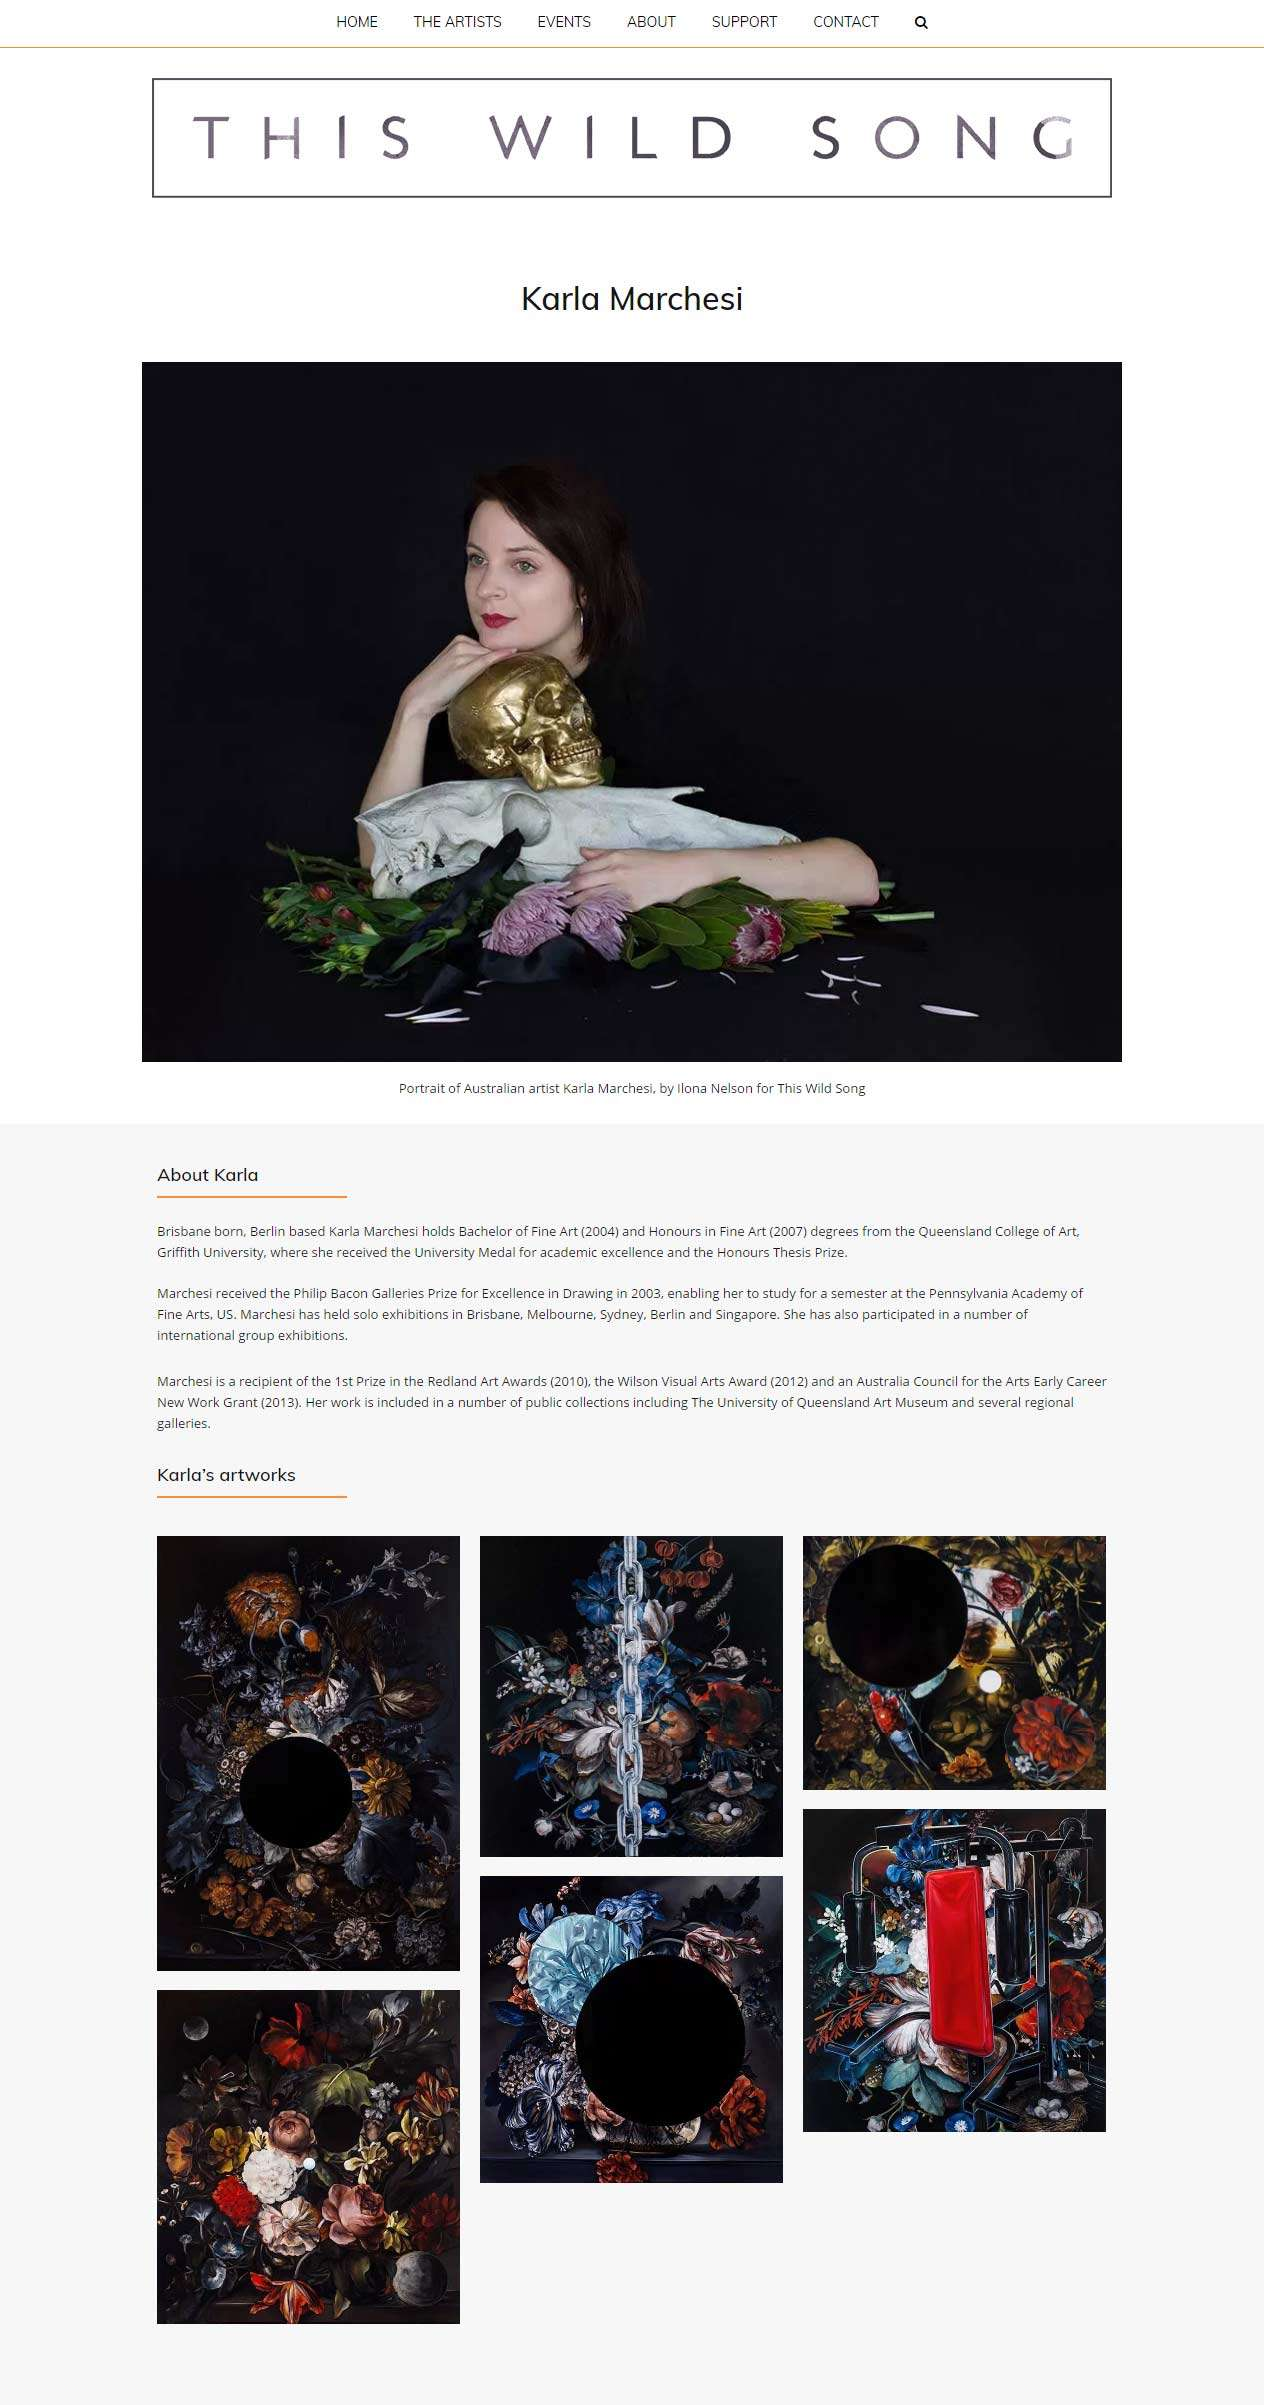 This Wild Song Website Page For Artist Karla Marchesi. Design And Wordpress Website Build By Birdhouse Digital